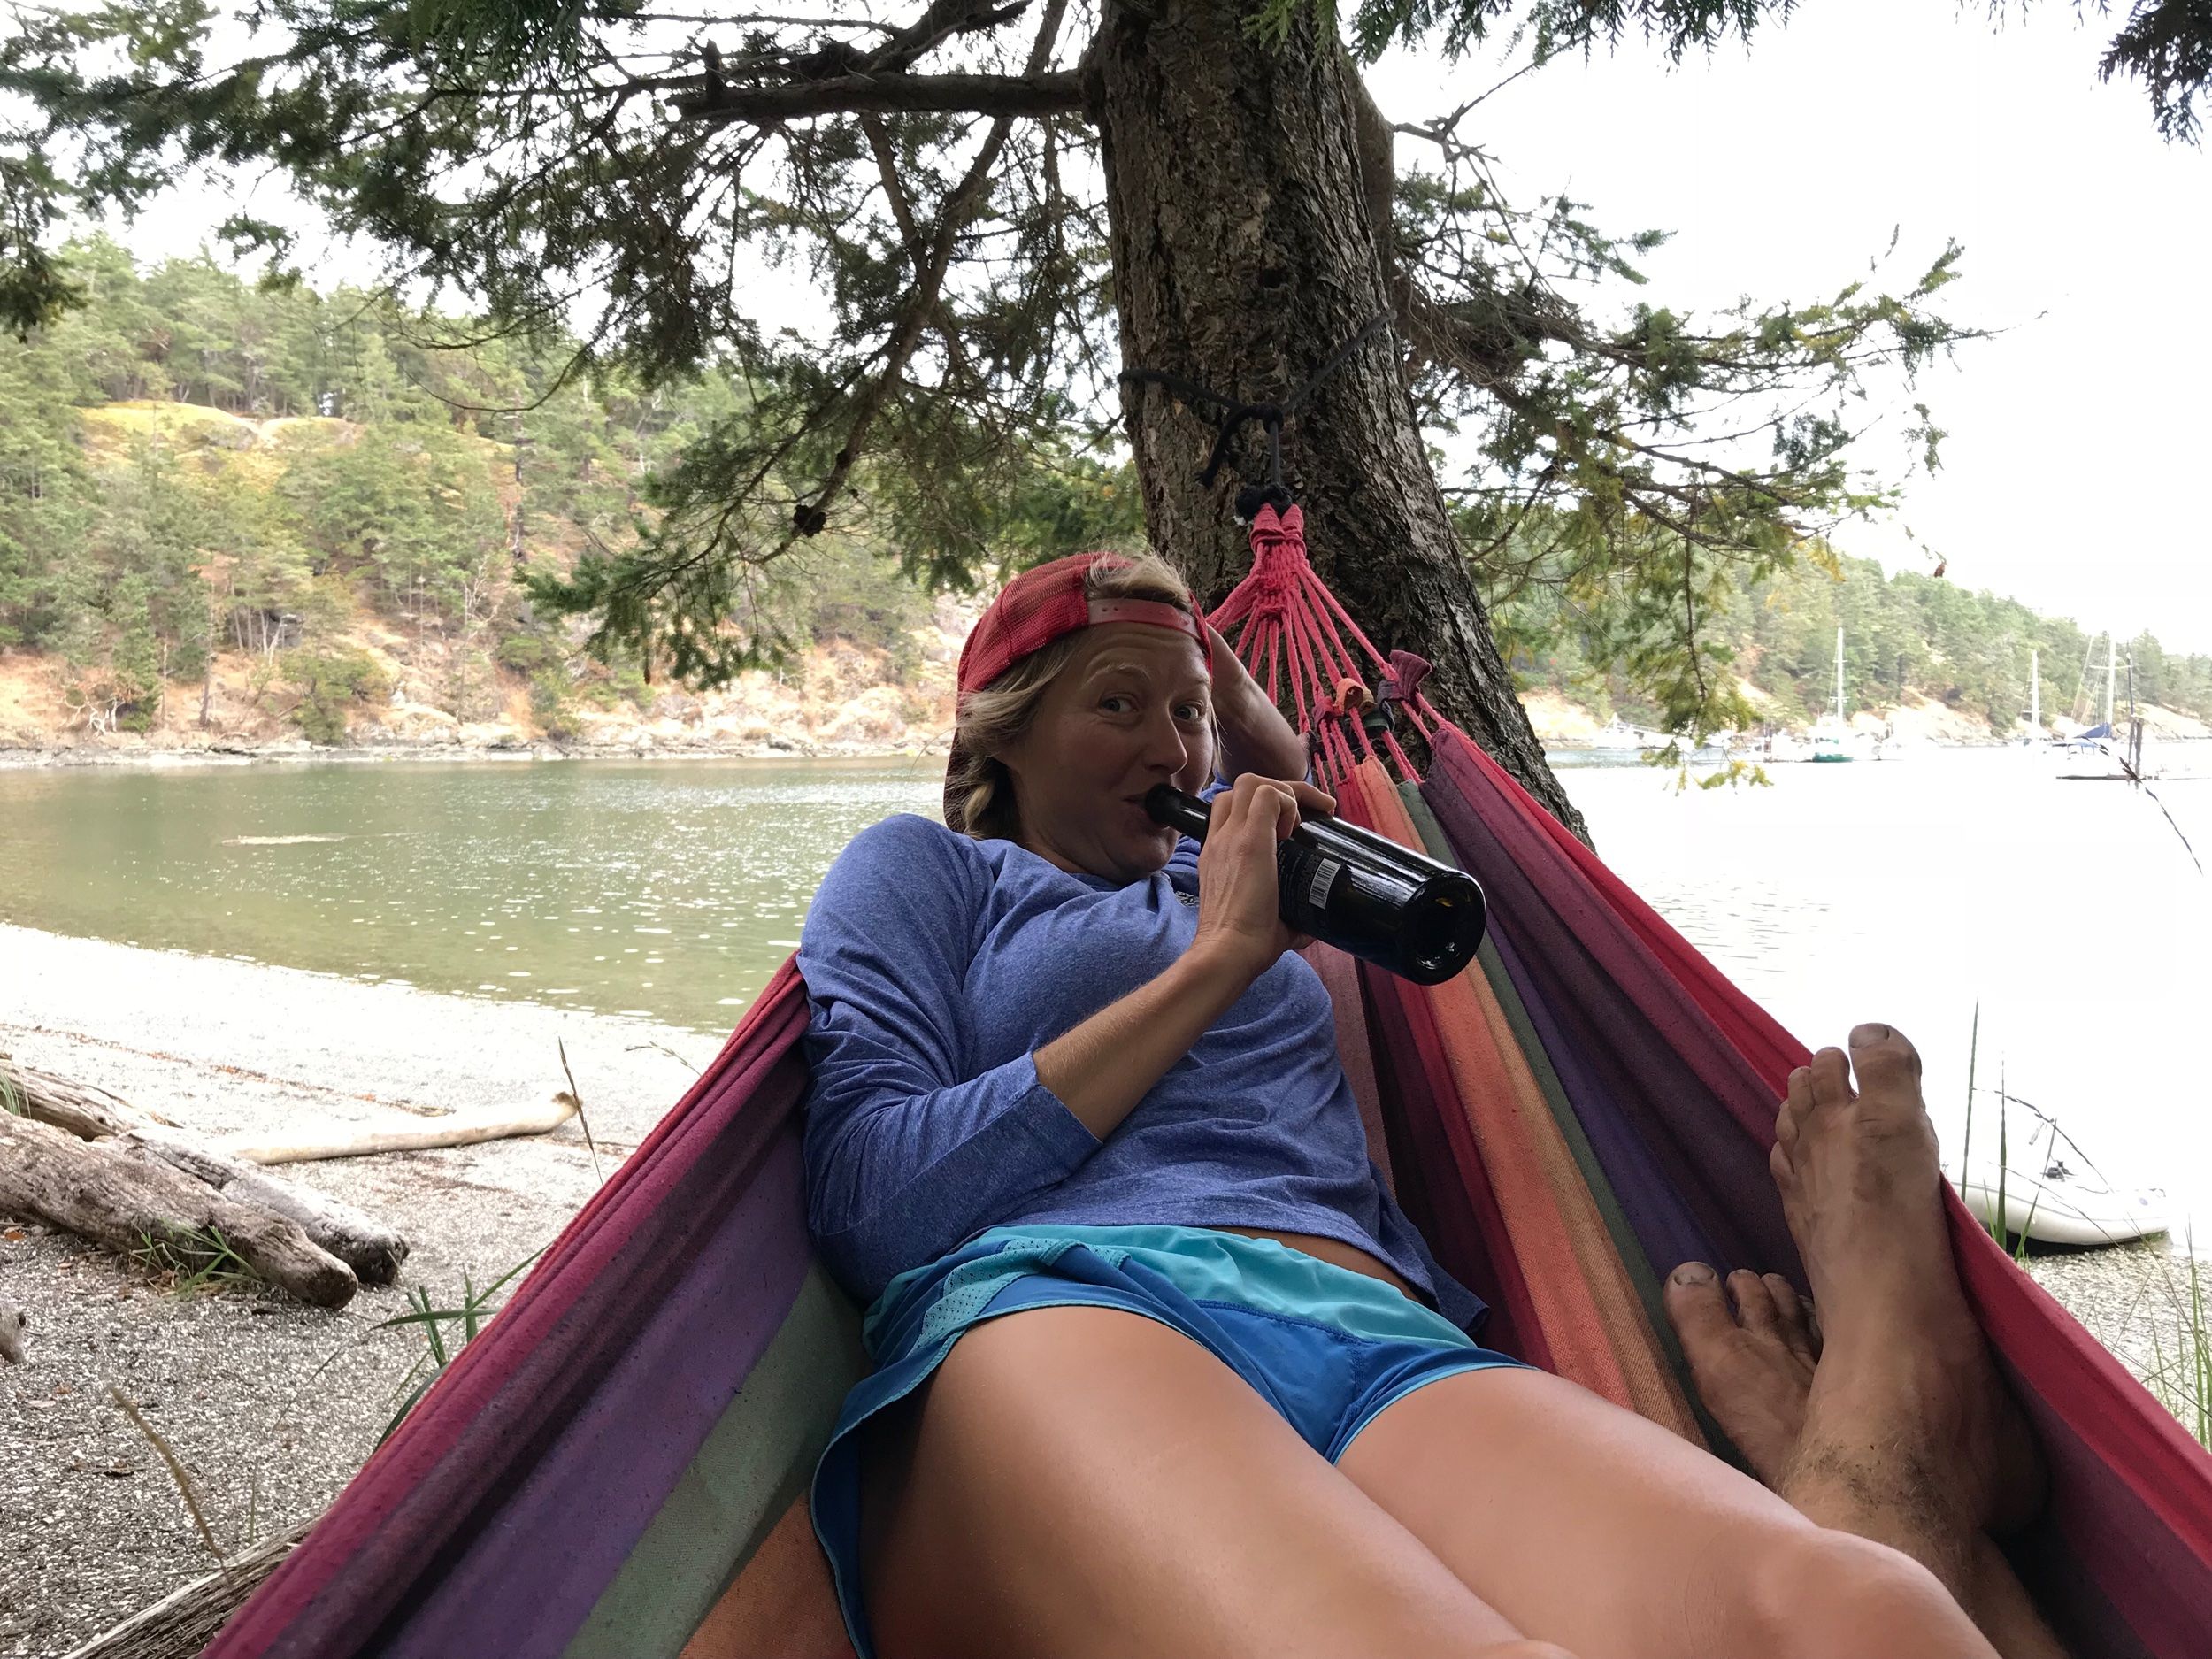 Active liFestYLe charters - Running, Yoga, Hiking, Healthy Living4 day adventure sailing in the remote and rugged San Juan Islands